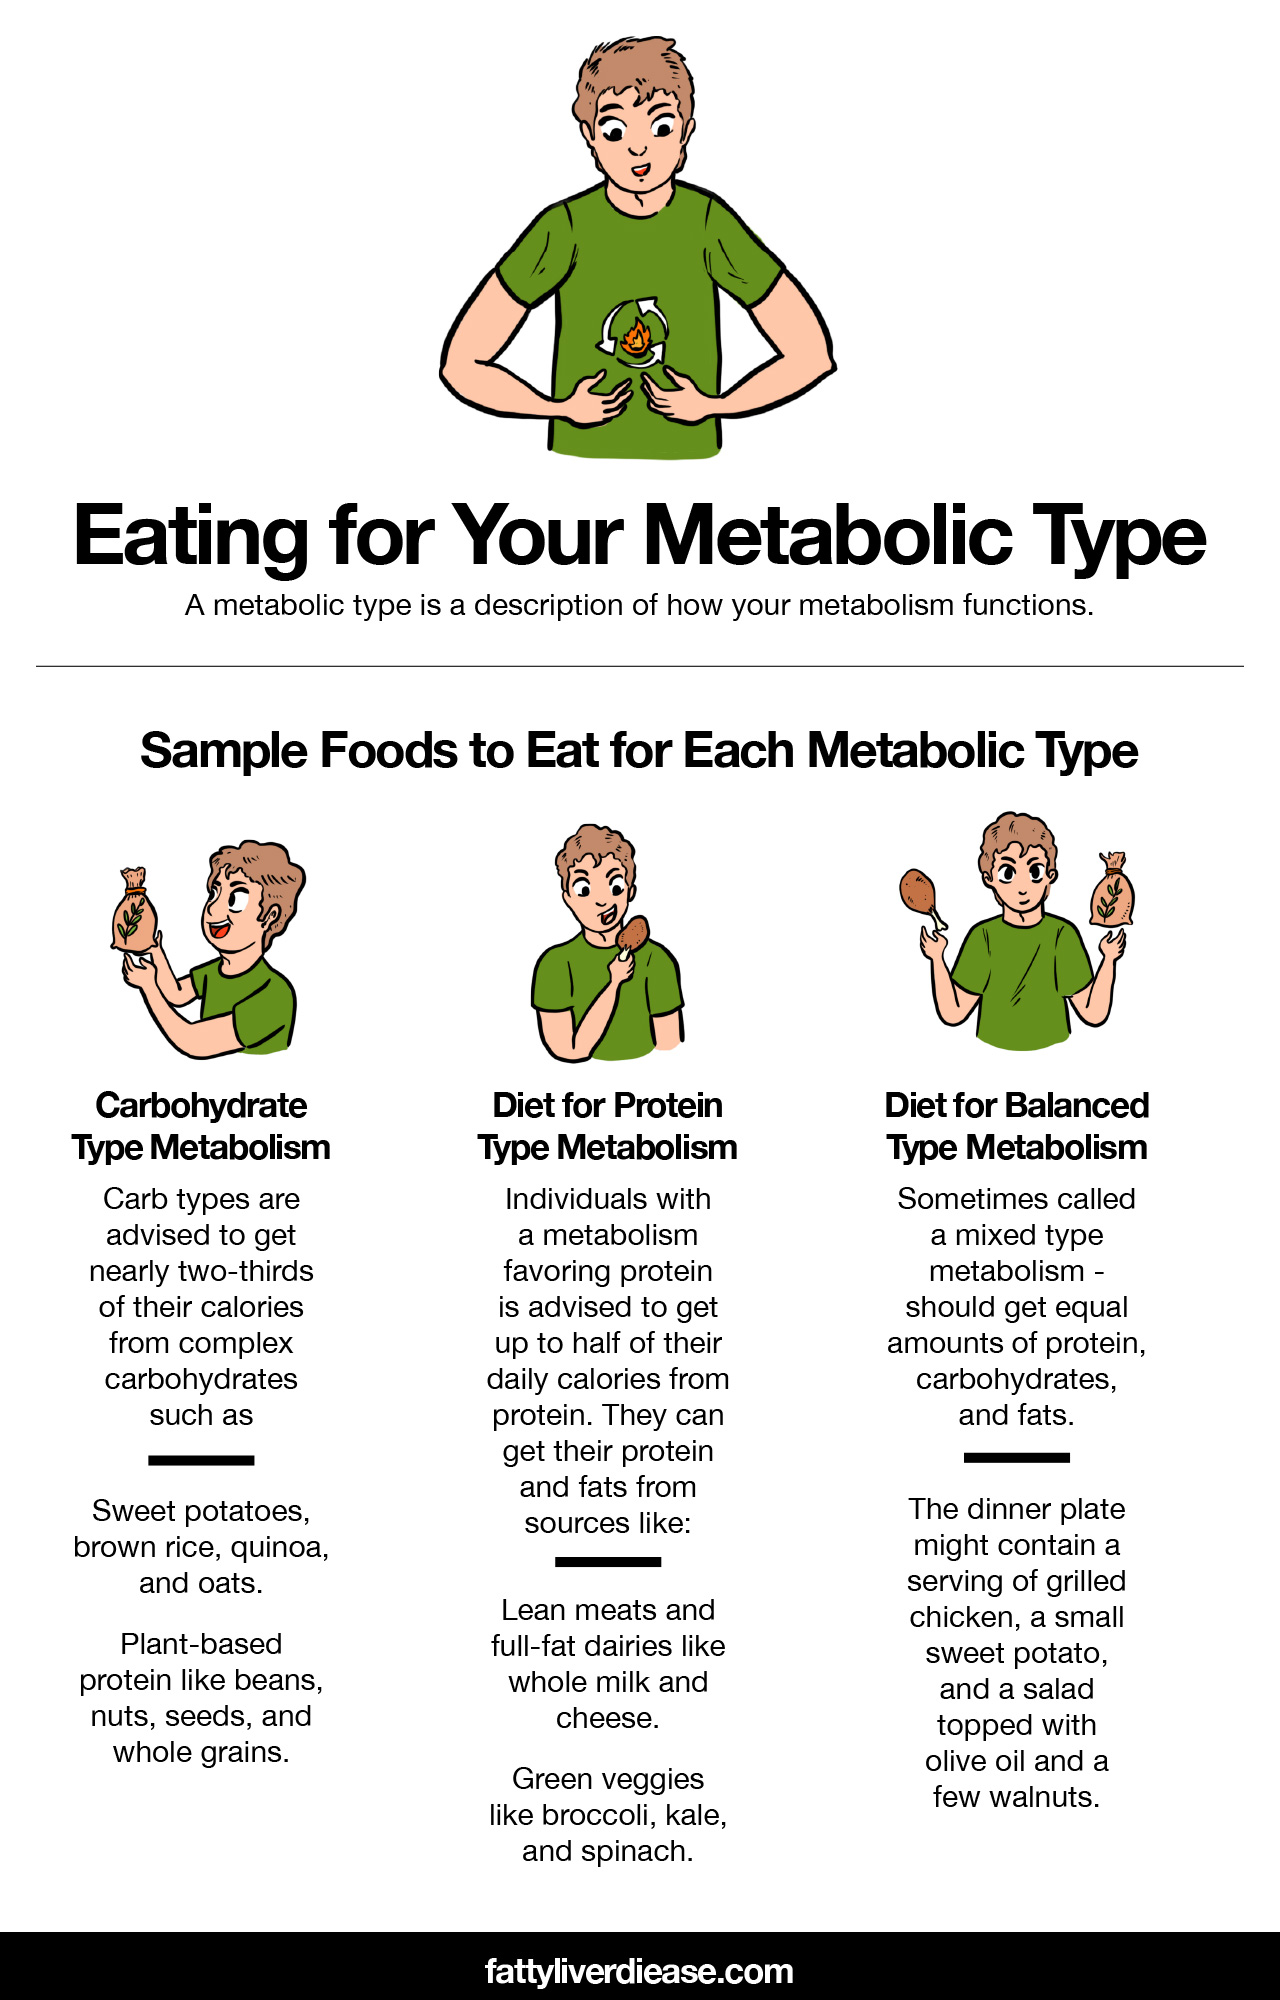 Eating for Your Metabolic Type